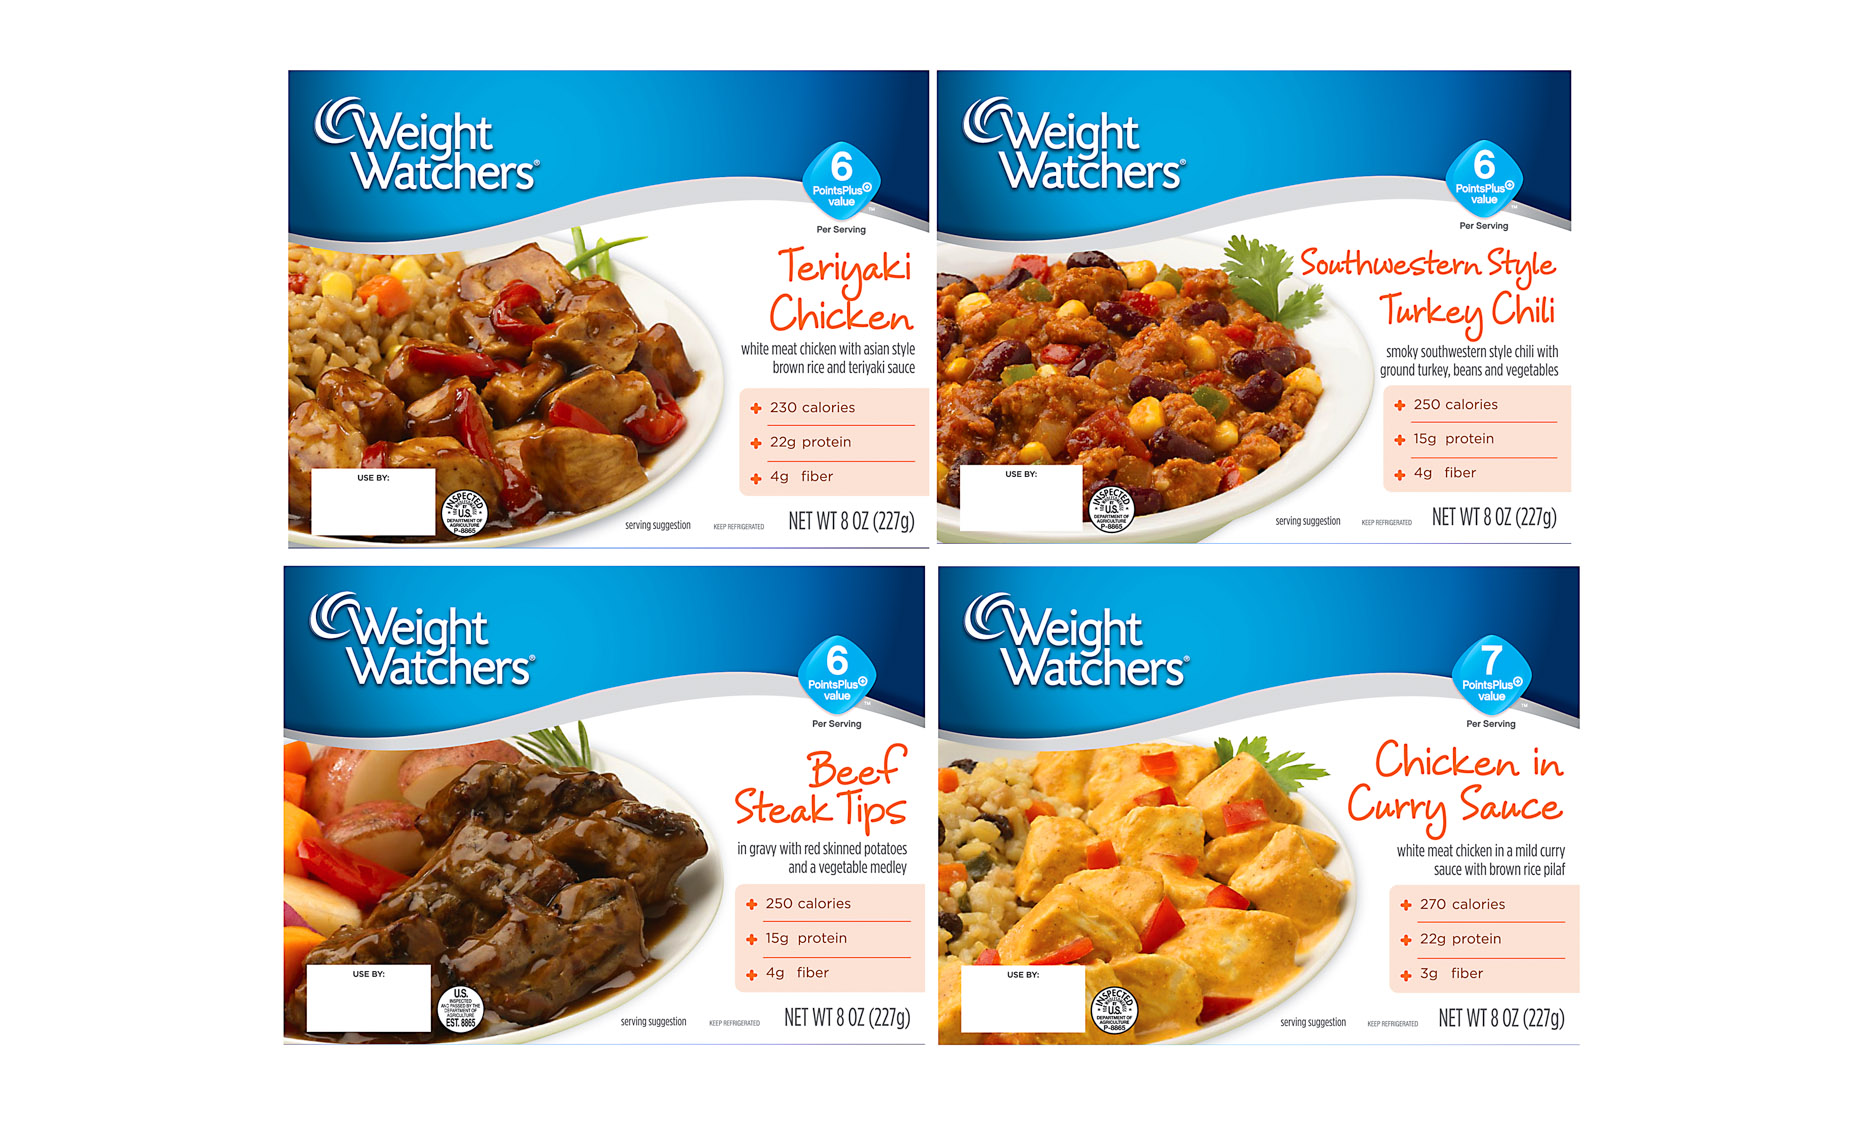 Weight Watchers Packaging Photography